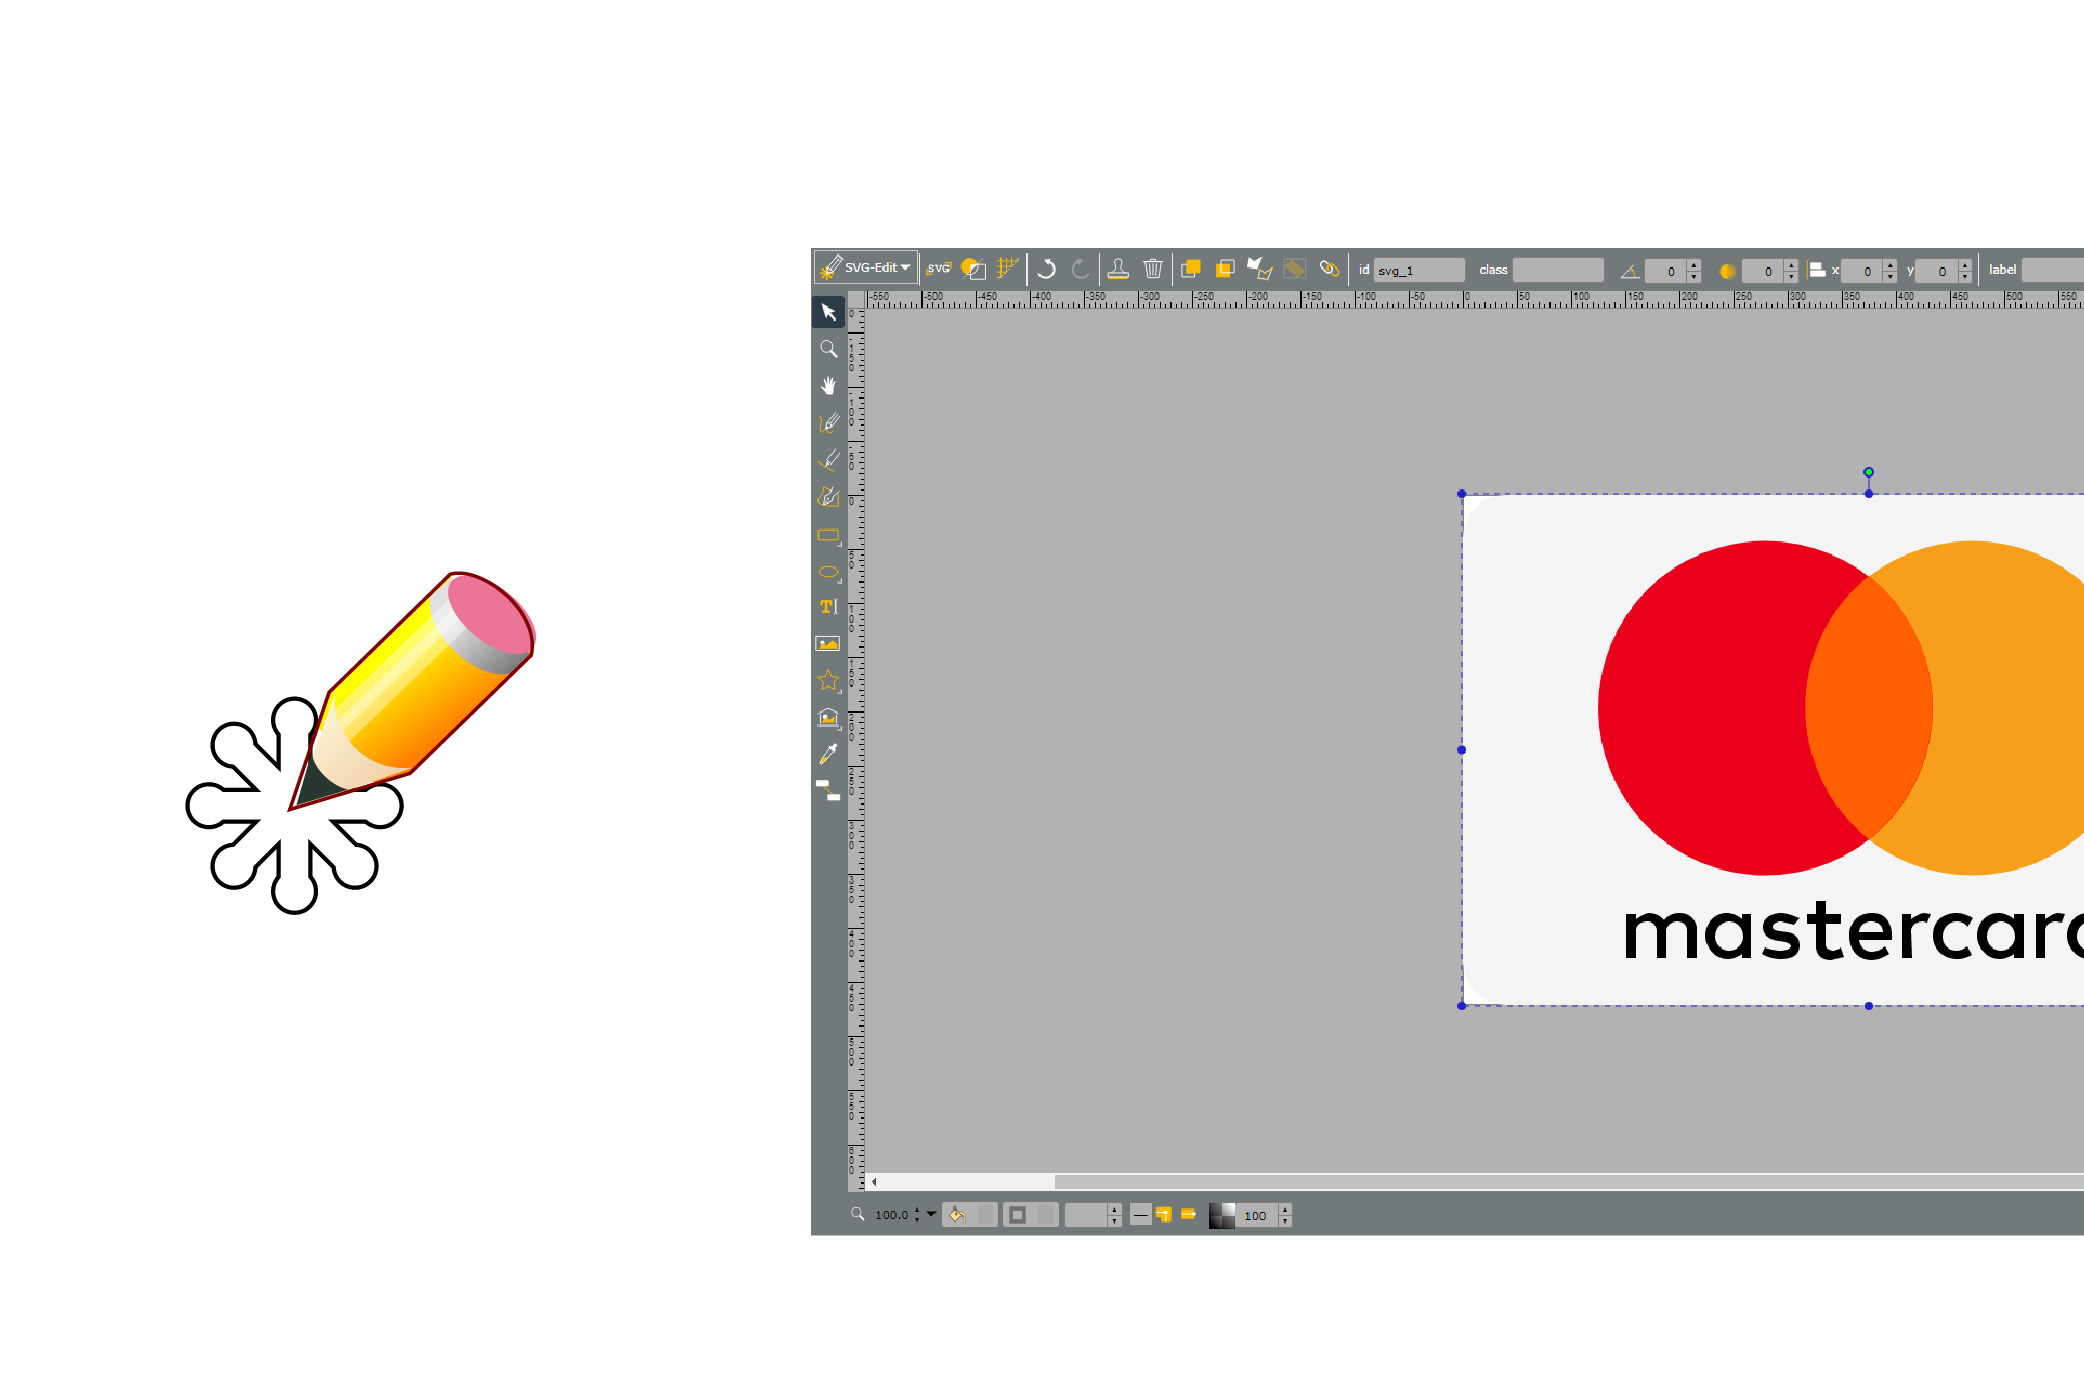 Interface of SVG-Edit software